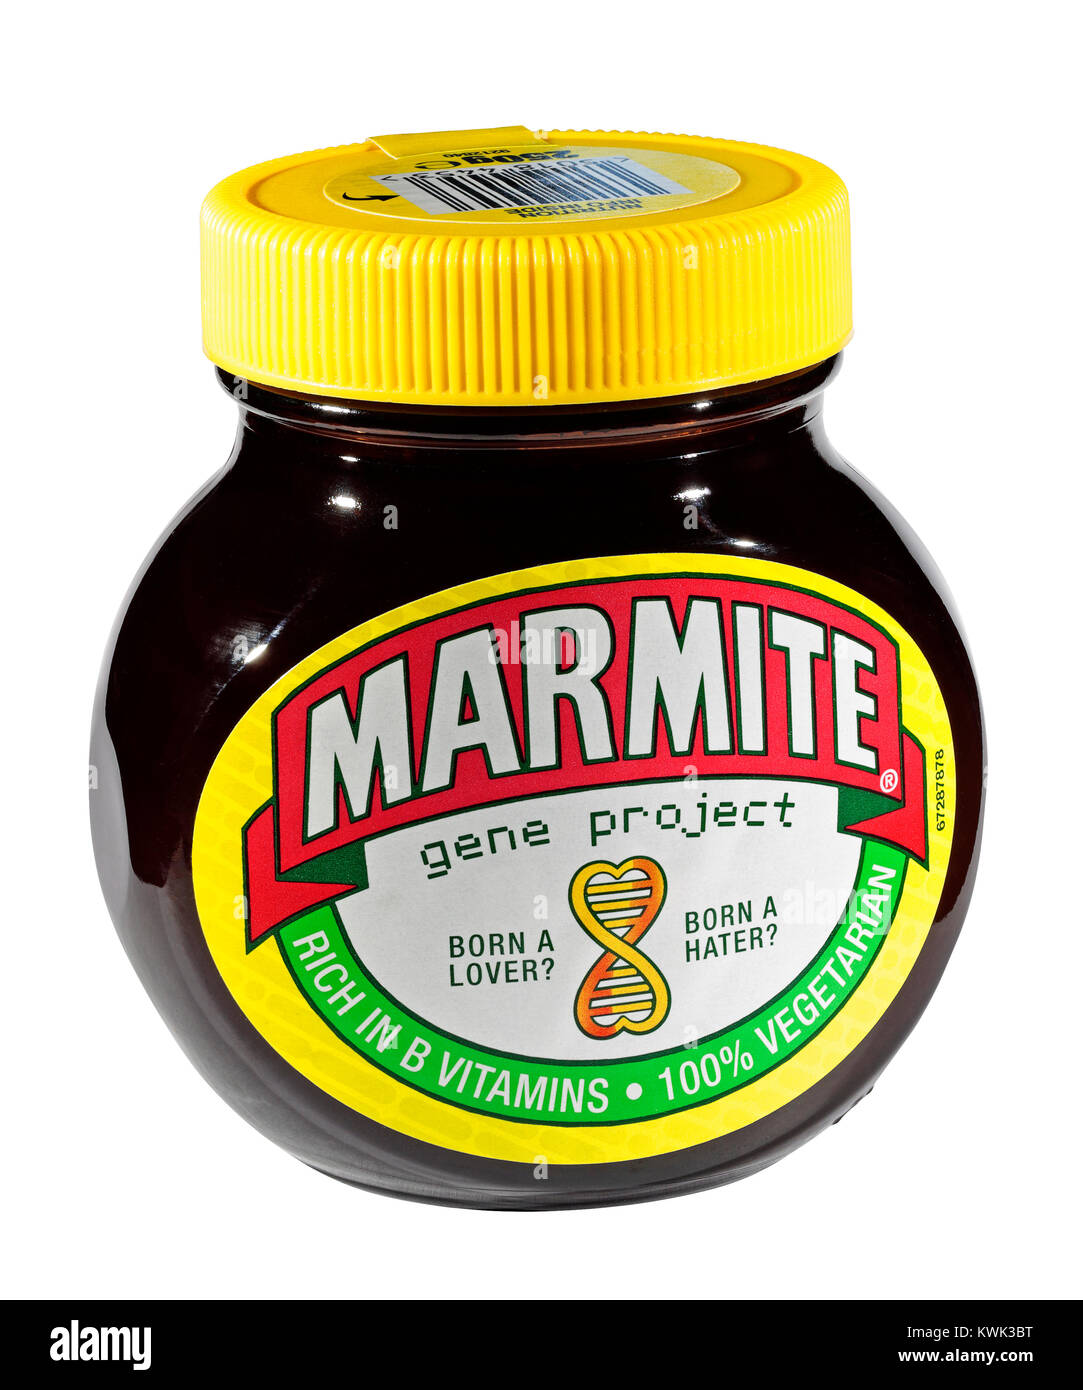 A jar of Marmite - Born a Lover? - Born a Hater? - gene project isolated on a white background - Stock Image